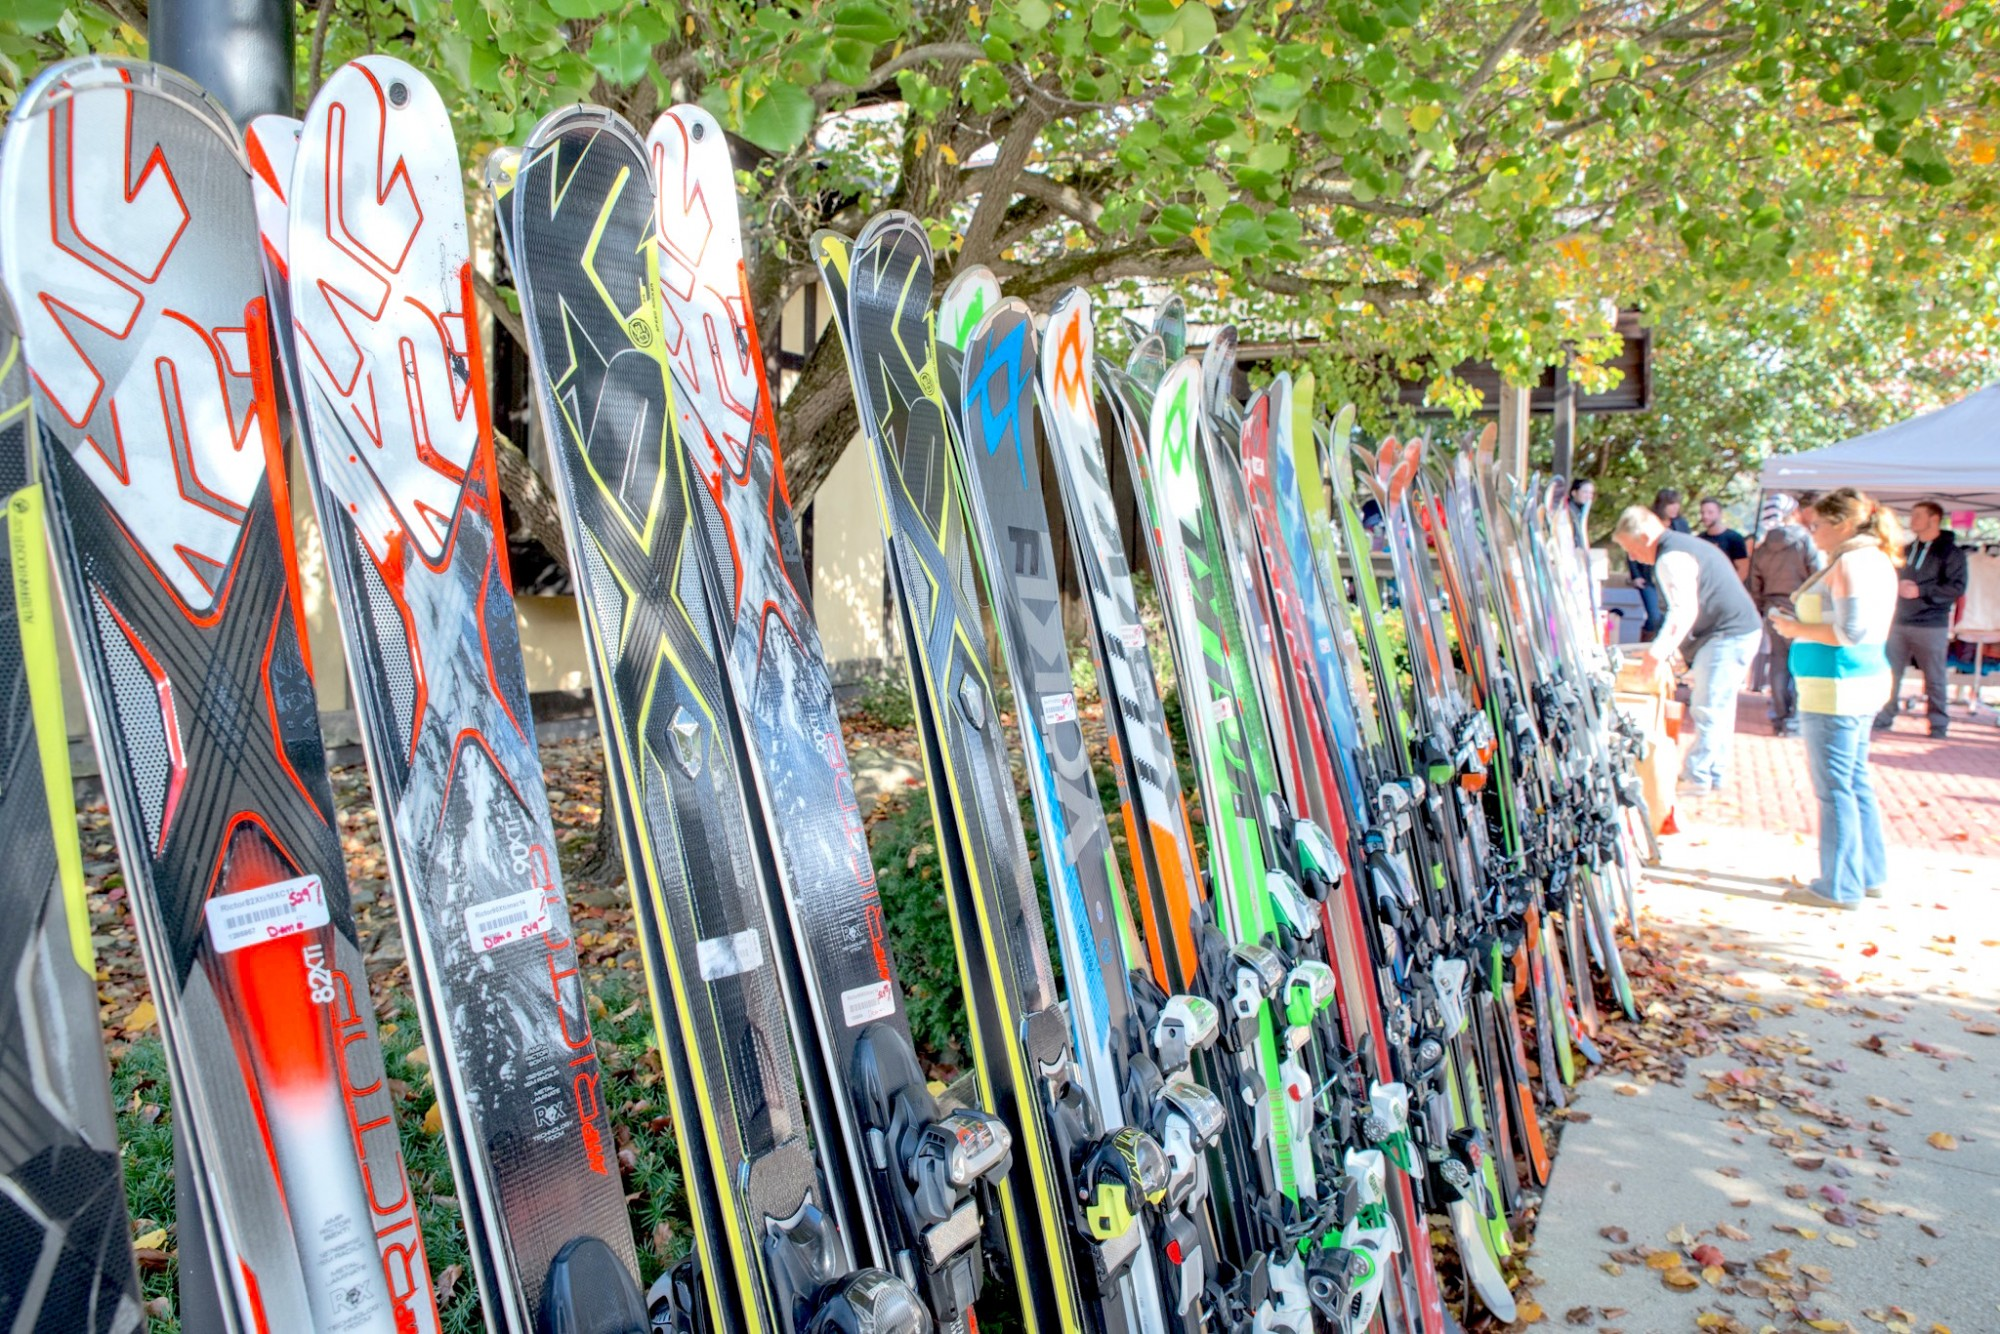 Great Deals on Skis at Snow Trails Ski Patrol Swap Weekend